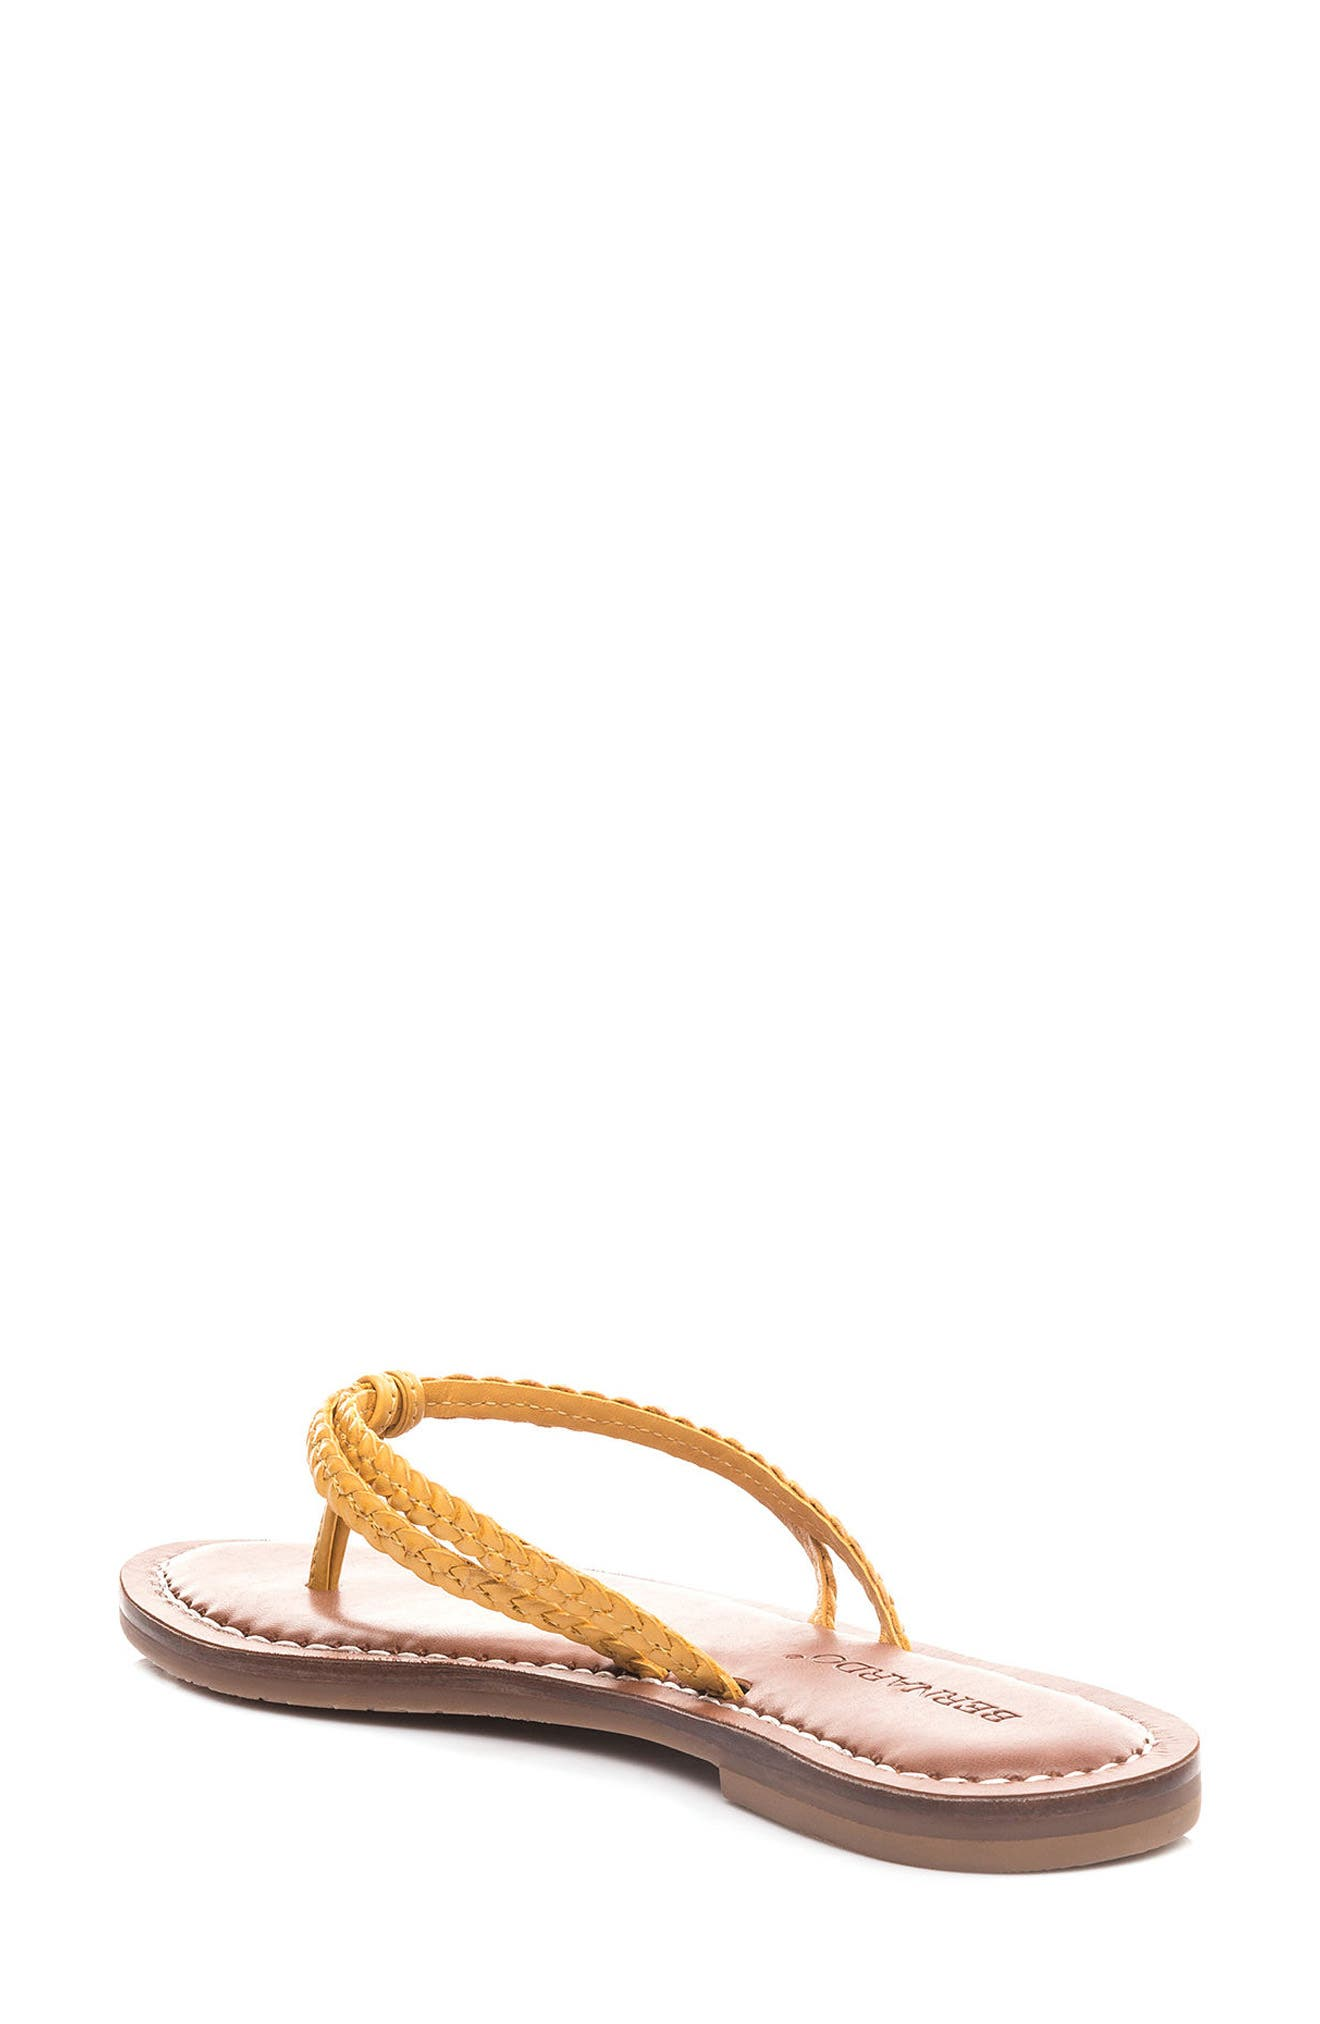 Bernardo Greta Braided Strap Sandal,                             Alternate thumbnail 13, color,